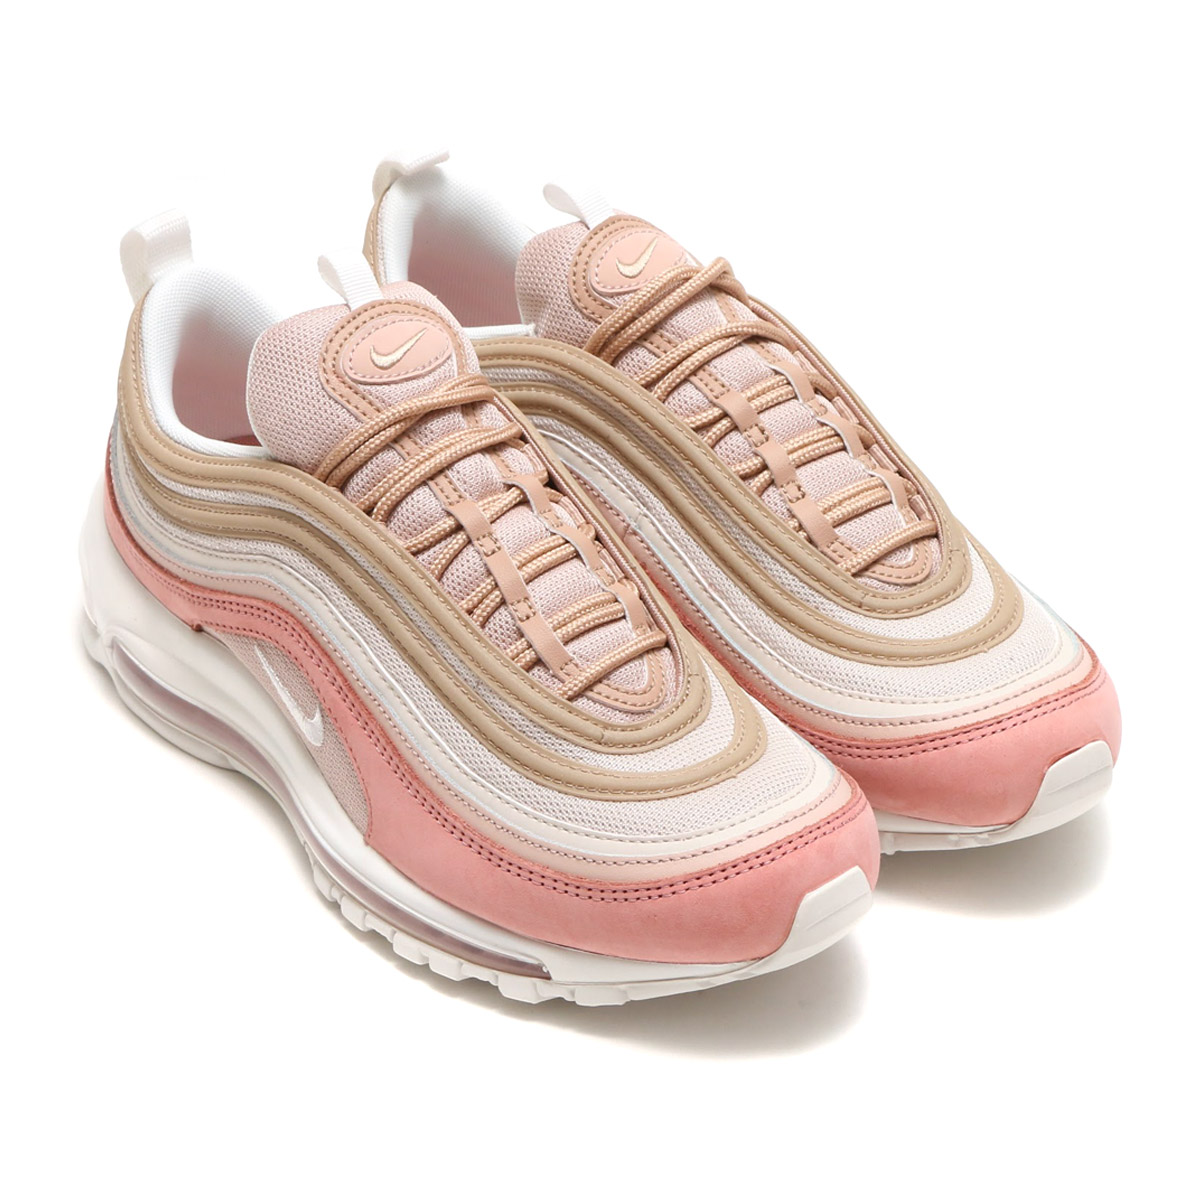 Cheap Nike Air Max 97 Ultra '17 x Skepta. Cheap Nike⁠+ SNKRS